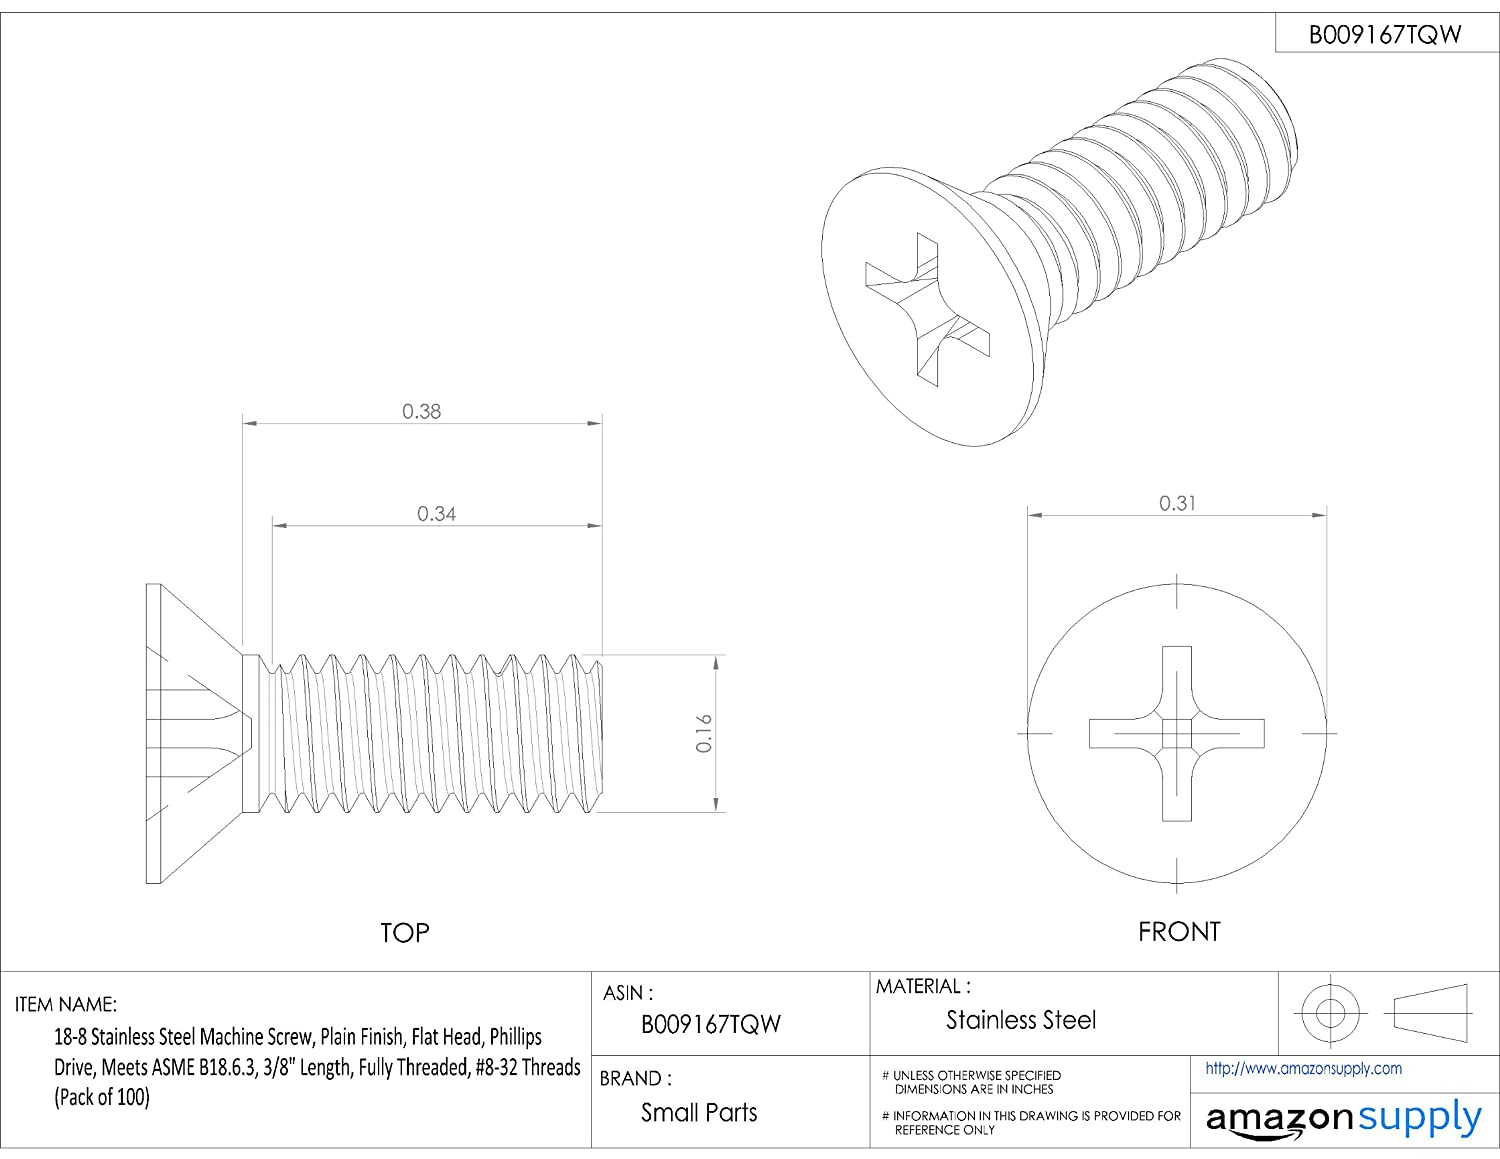 Plain Finish Fully Threaded Flat Head 18-8 Stainless Steel Machine Screw 3//8 Length Meets ASME B18.6.3 Phillips Drive 3//8 Length Small Parts #8-32 UNC Threads Pack of 100